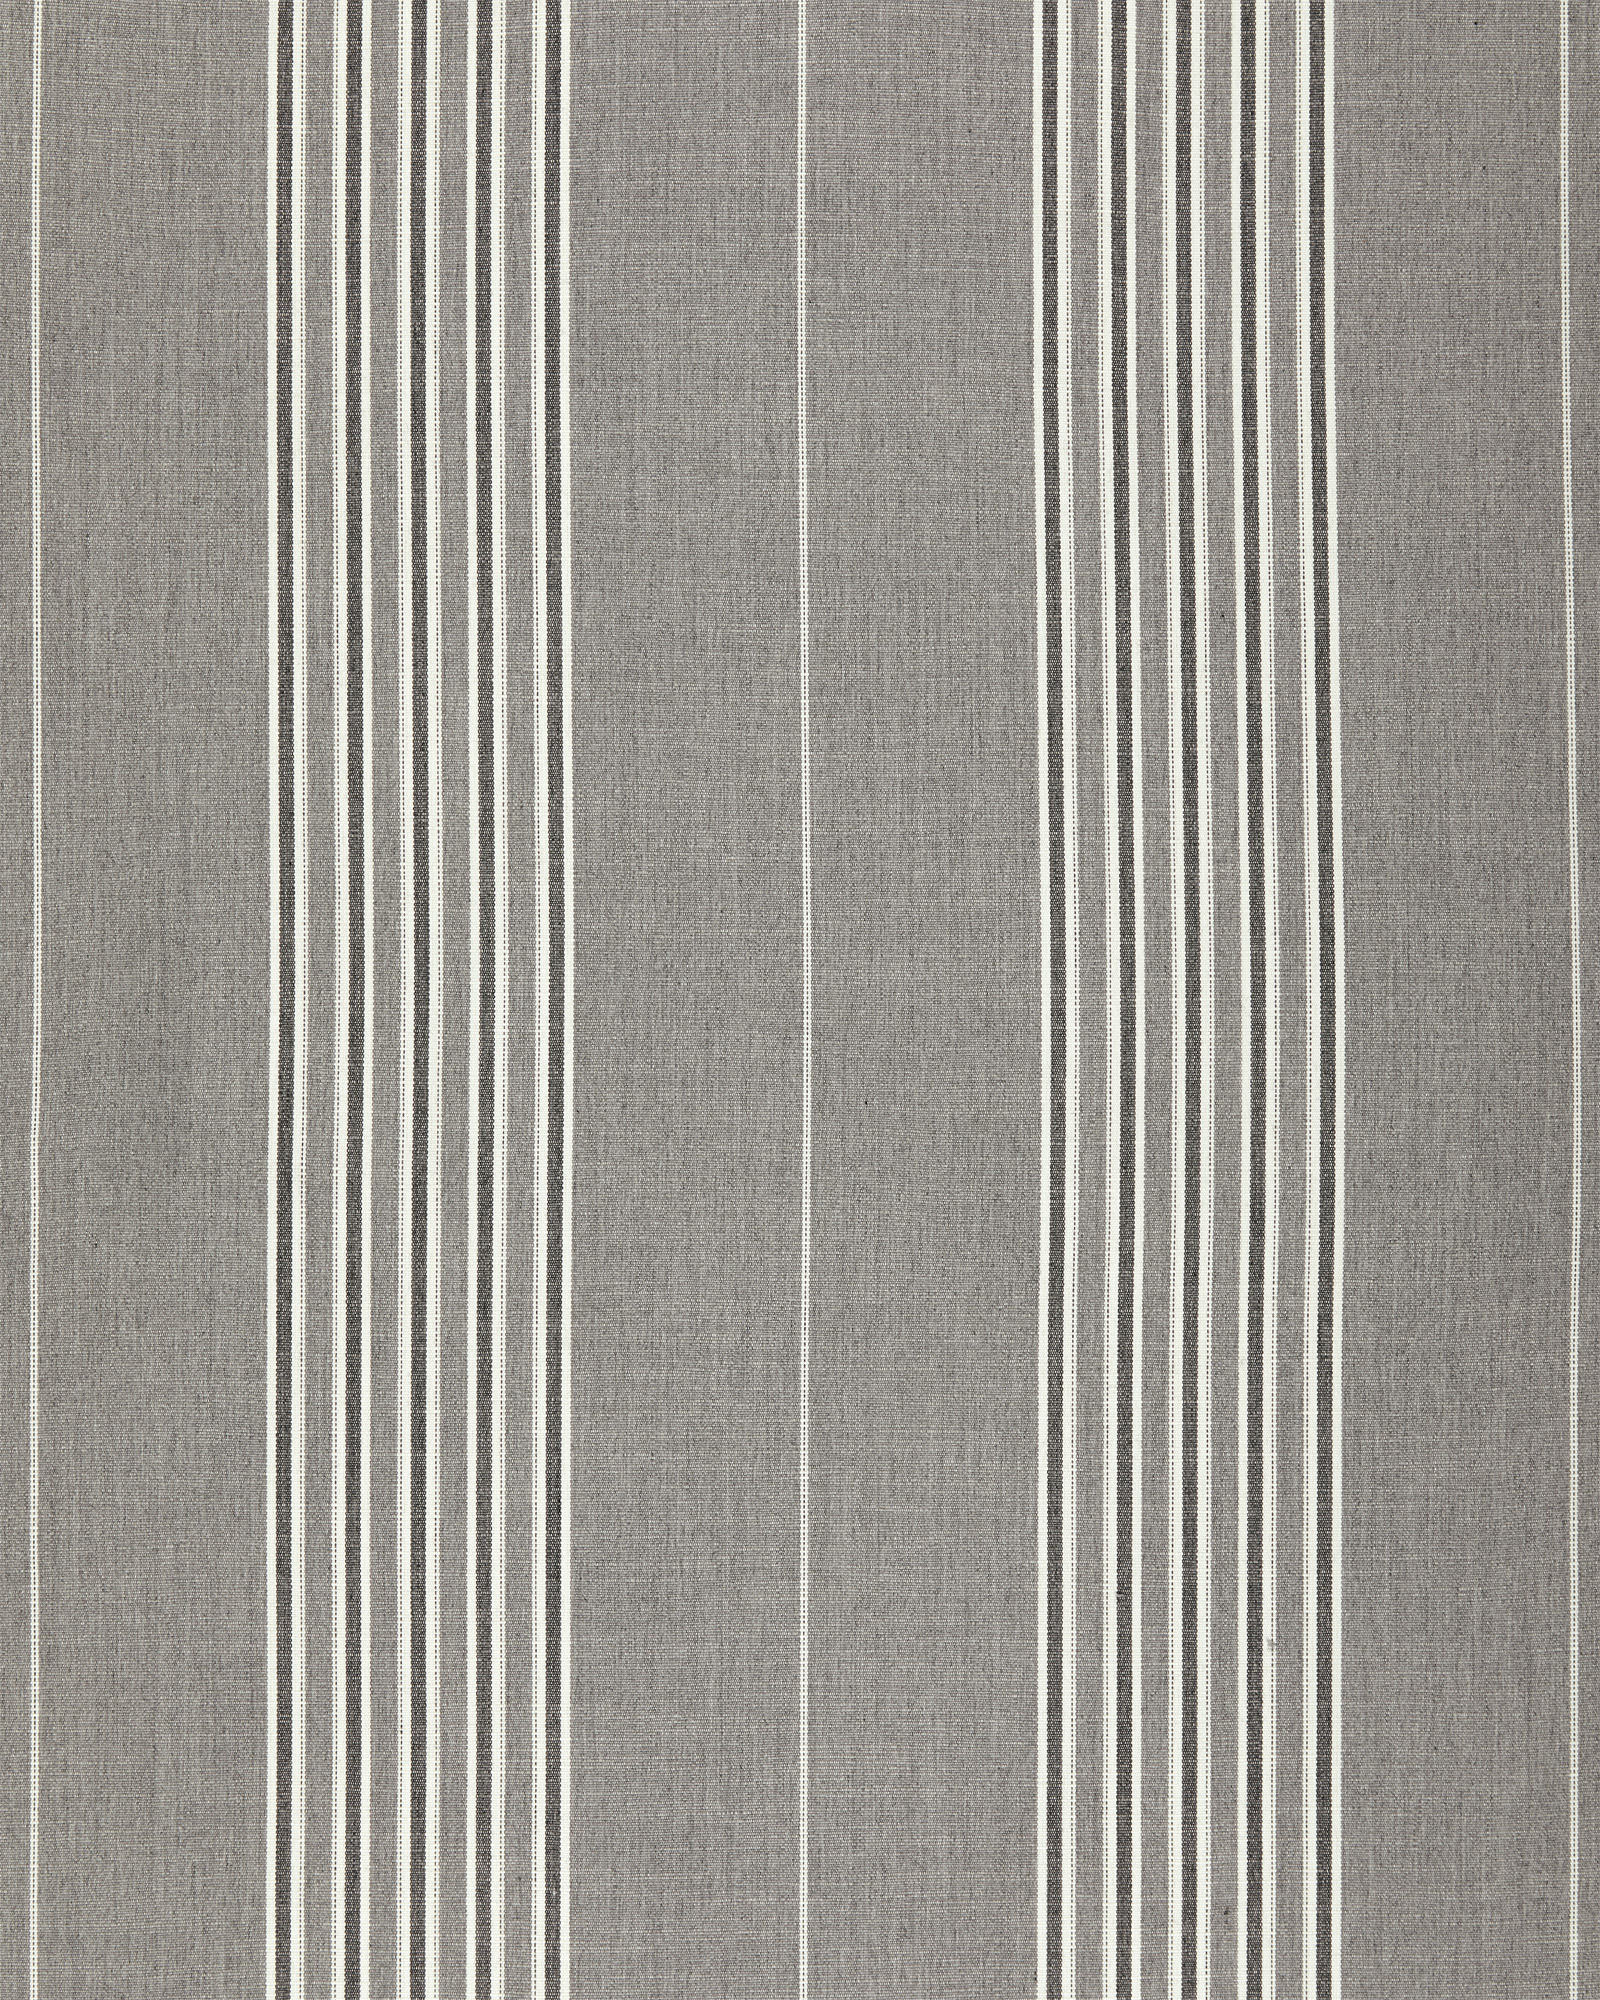 Perennials® Lake Stripe - Smoke/Charcoal,